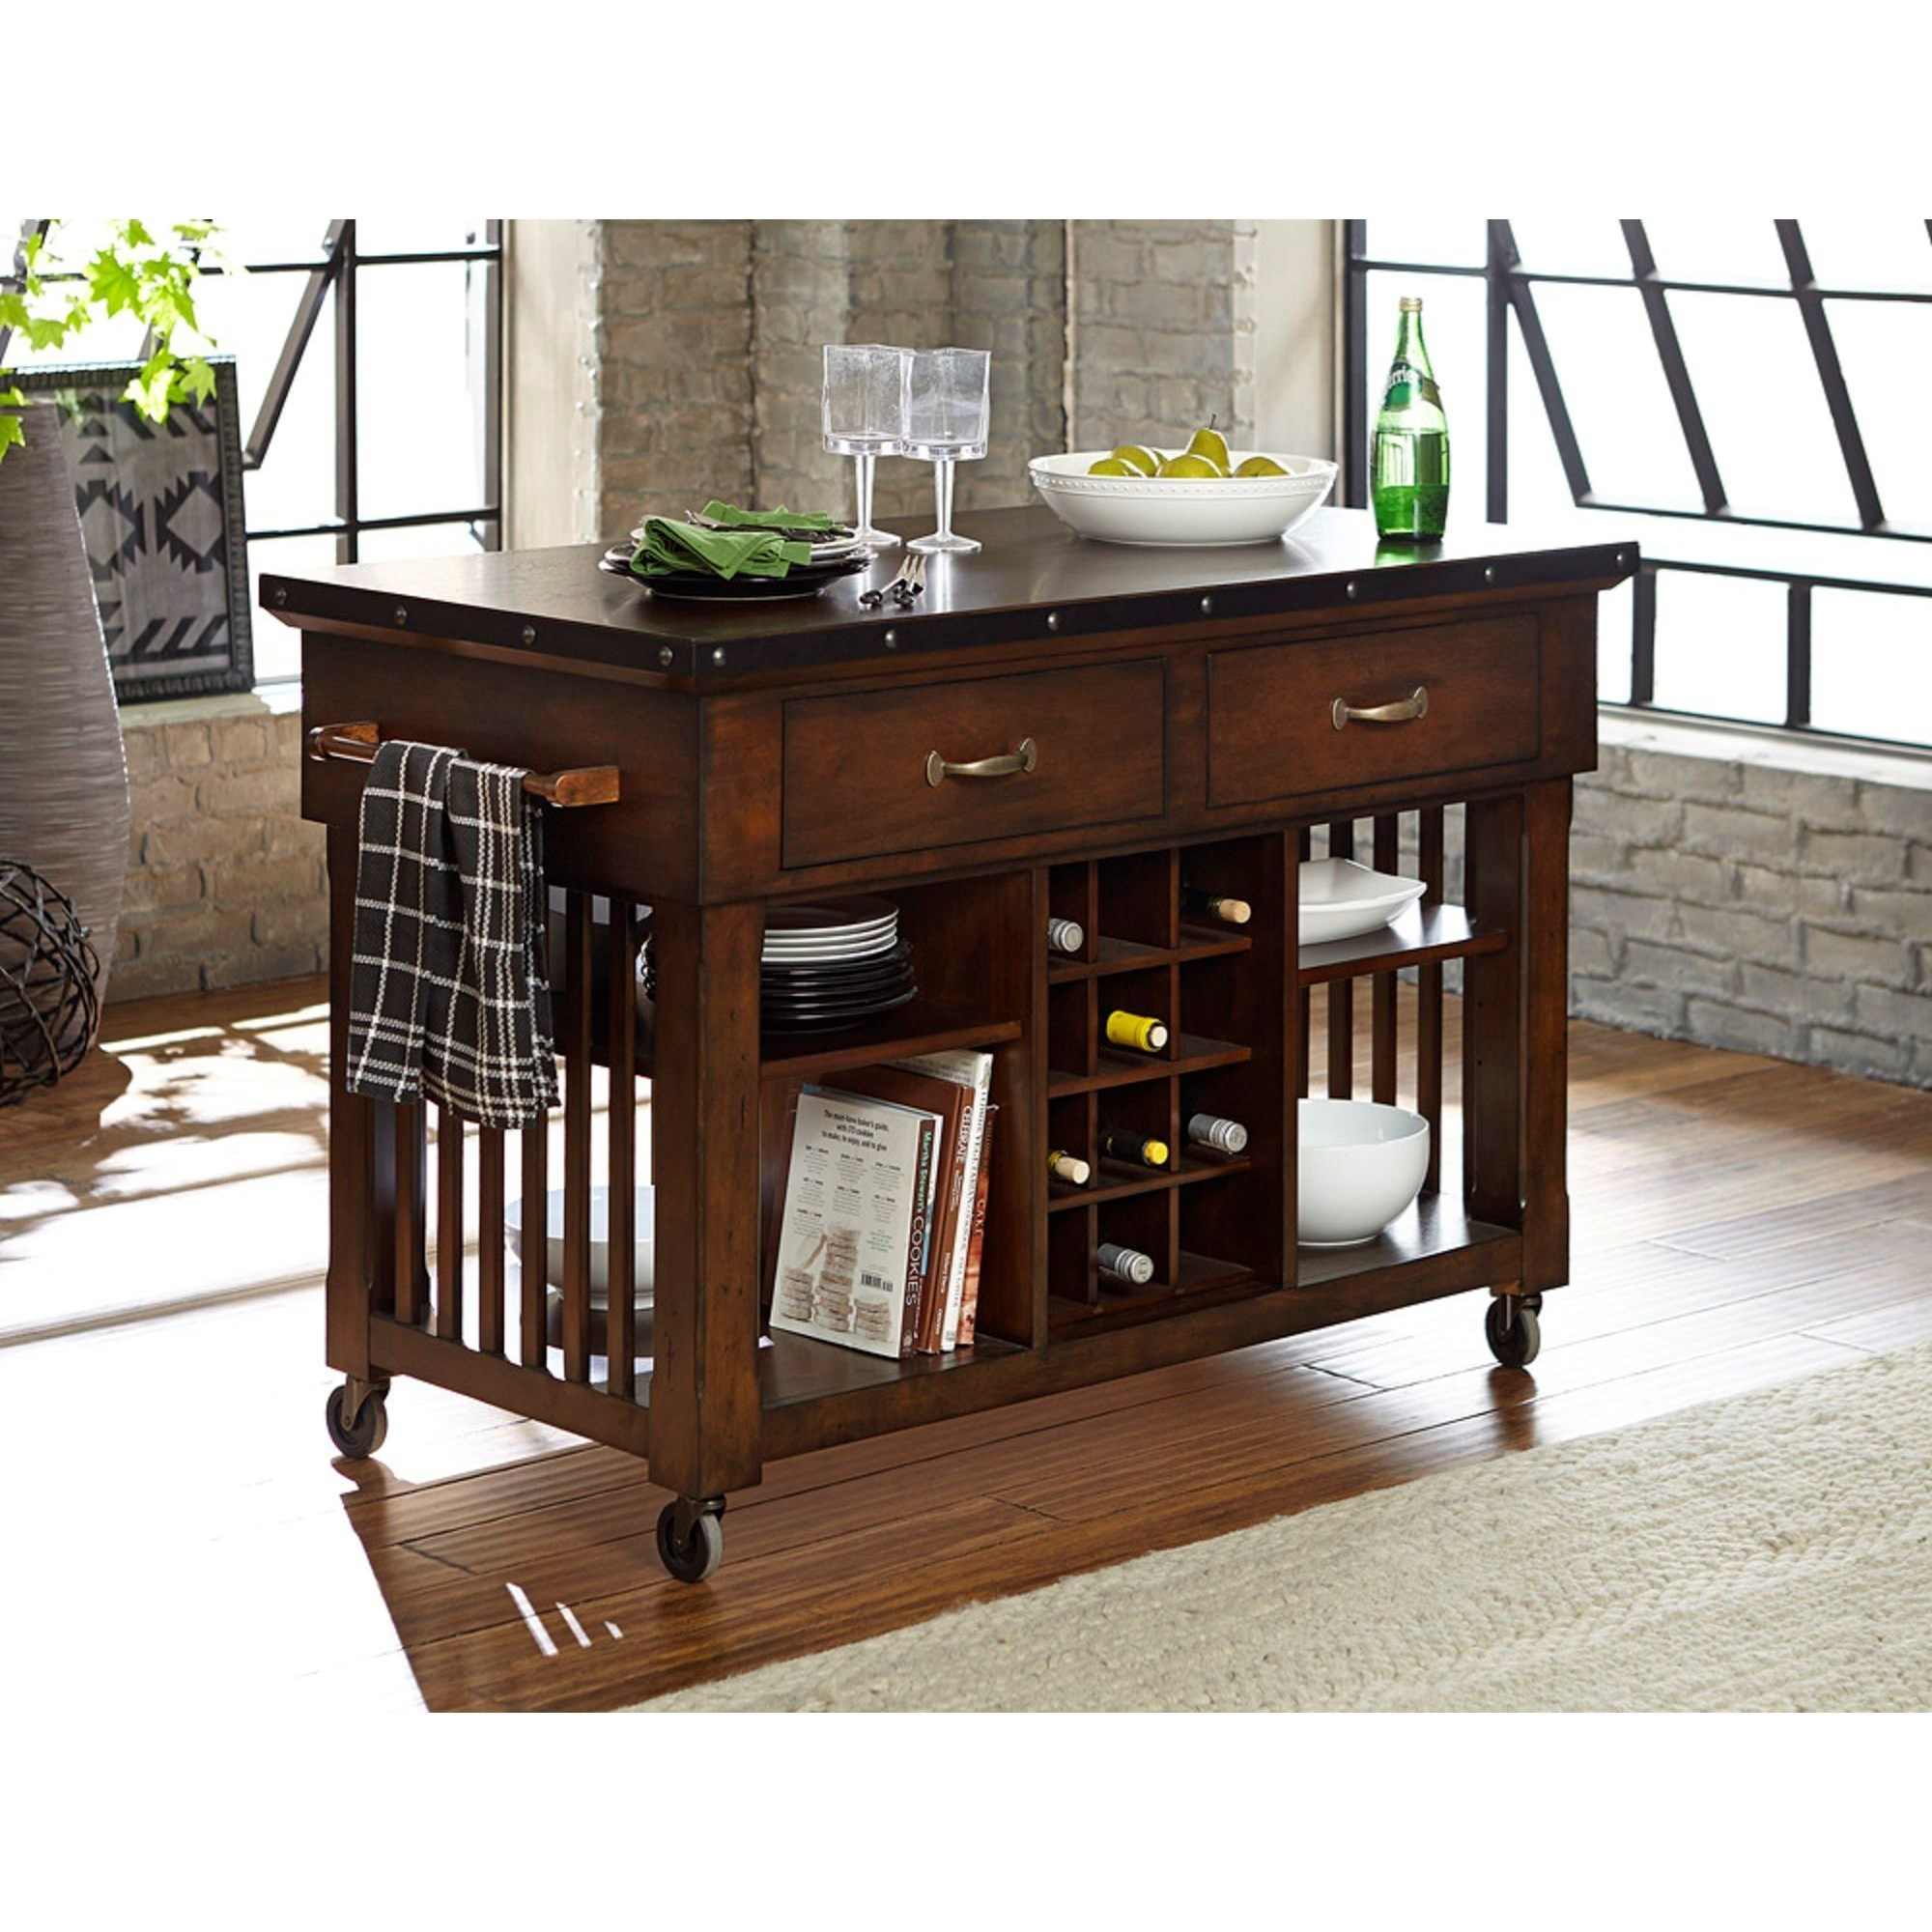 kitchen island cart industrial furniture schleiger industrial kitchen island cart with metal trim and decorative nail heads by homelegance